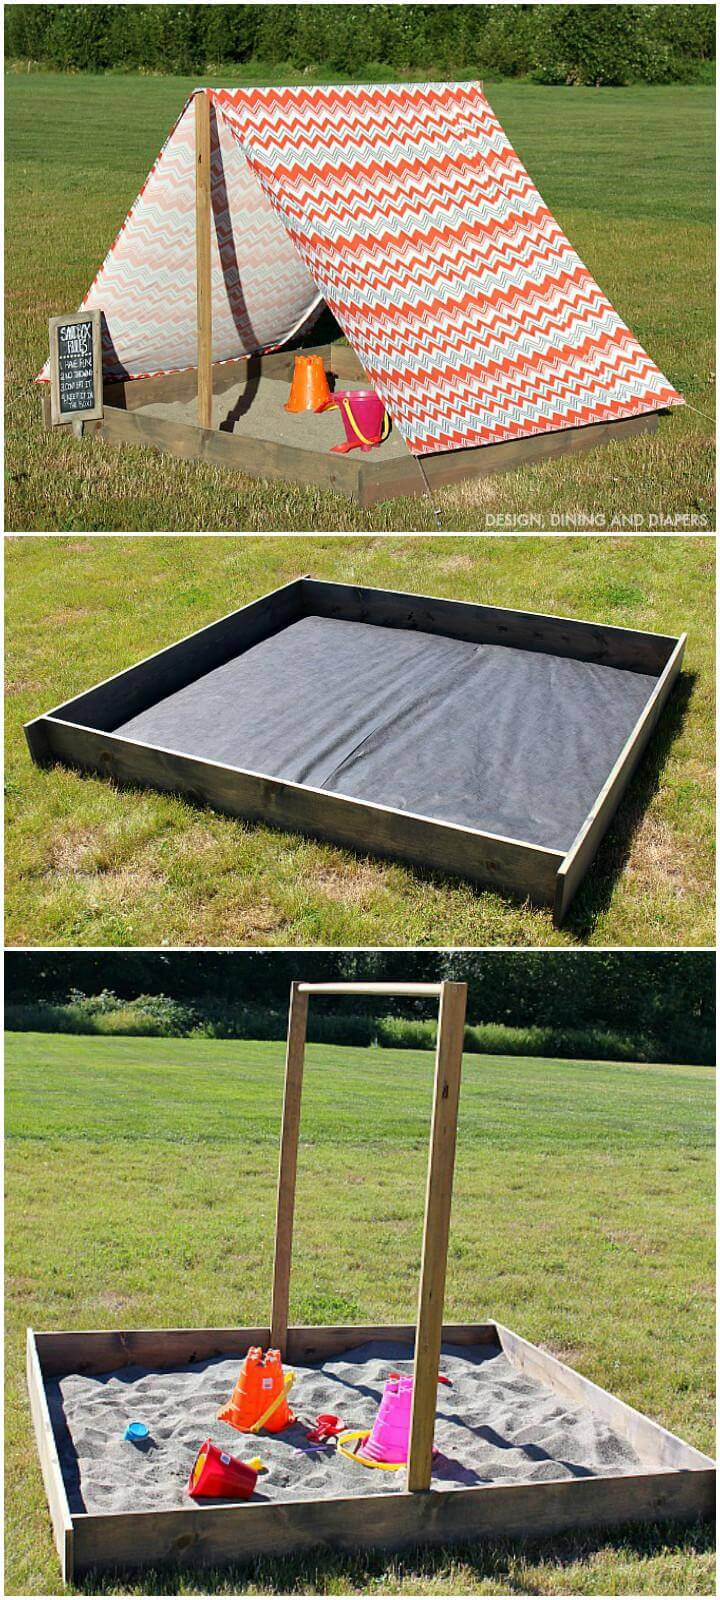 DIY Self-Made and Installed Sandbox with Cover